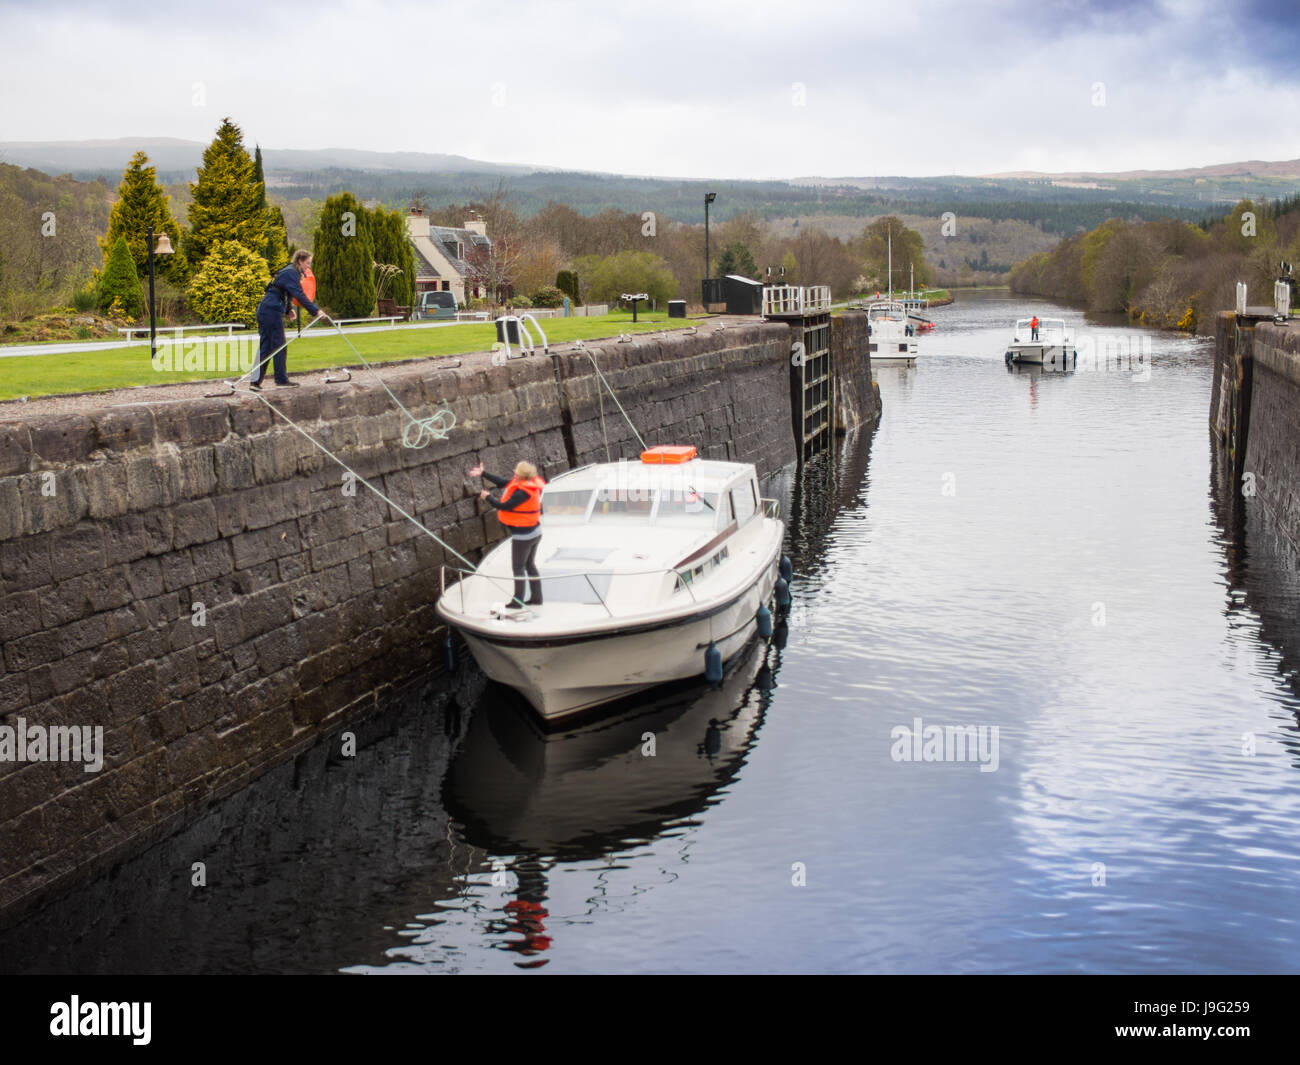 Charter boats going though Cullochy lock, lock keeper handling ropes - Stock Image